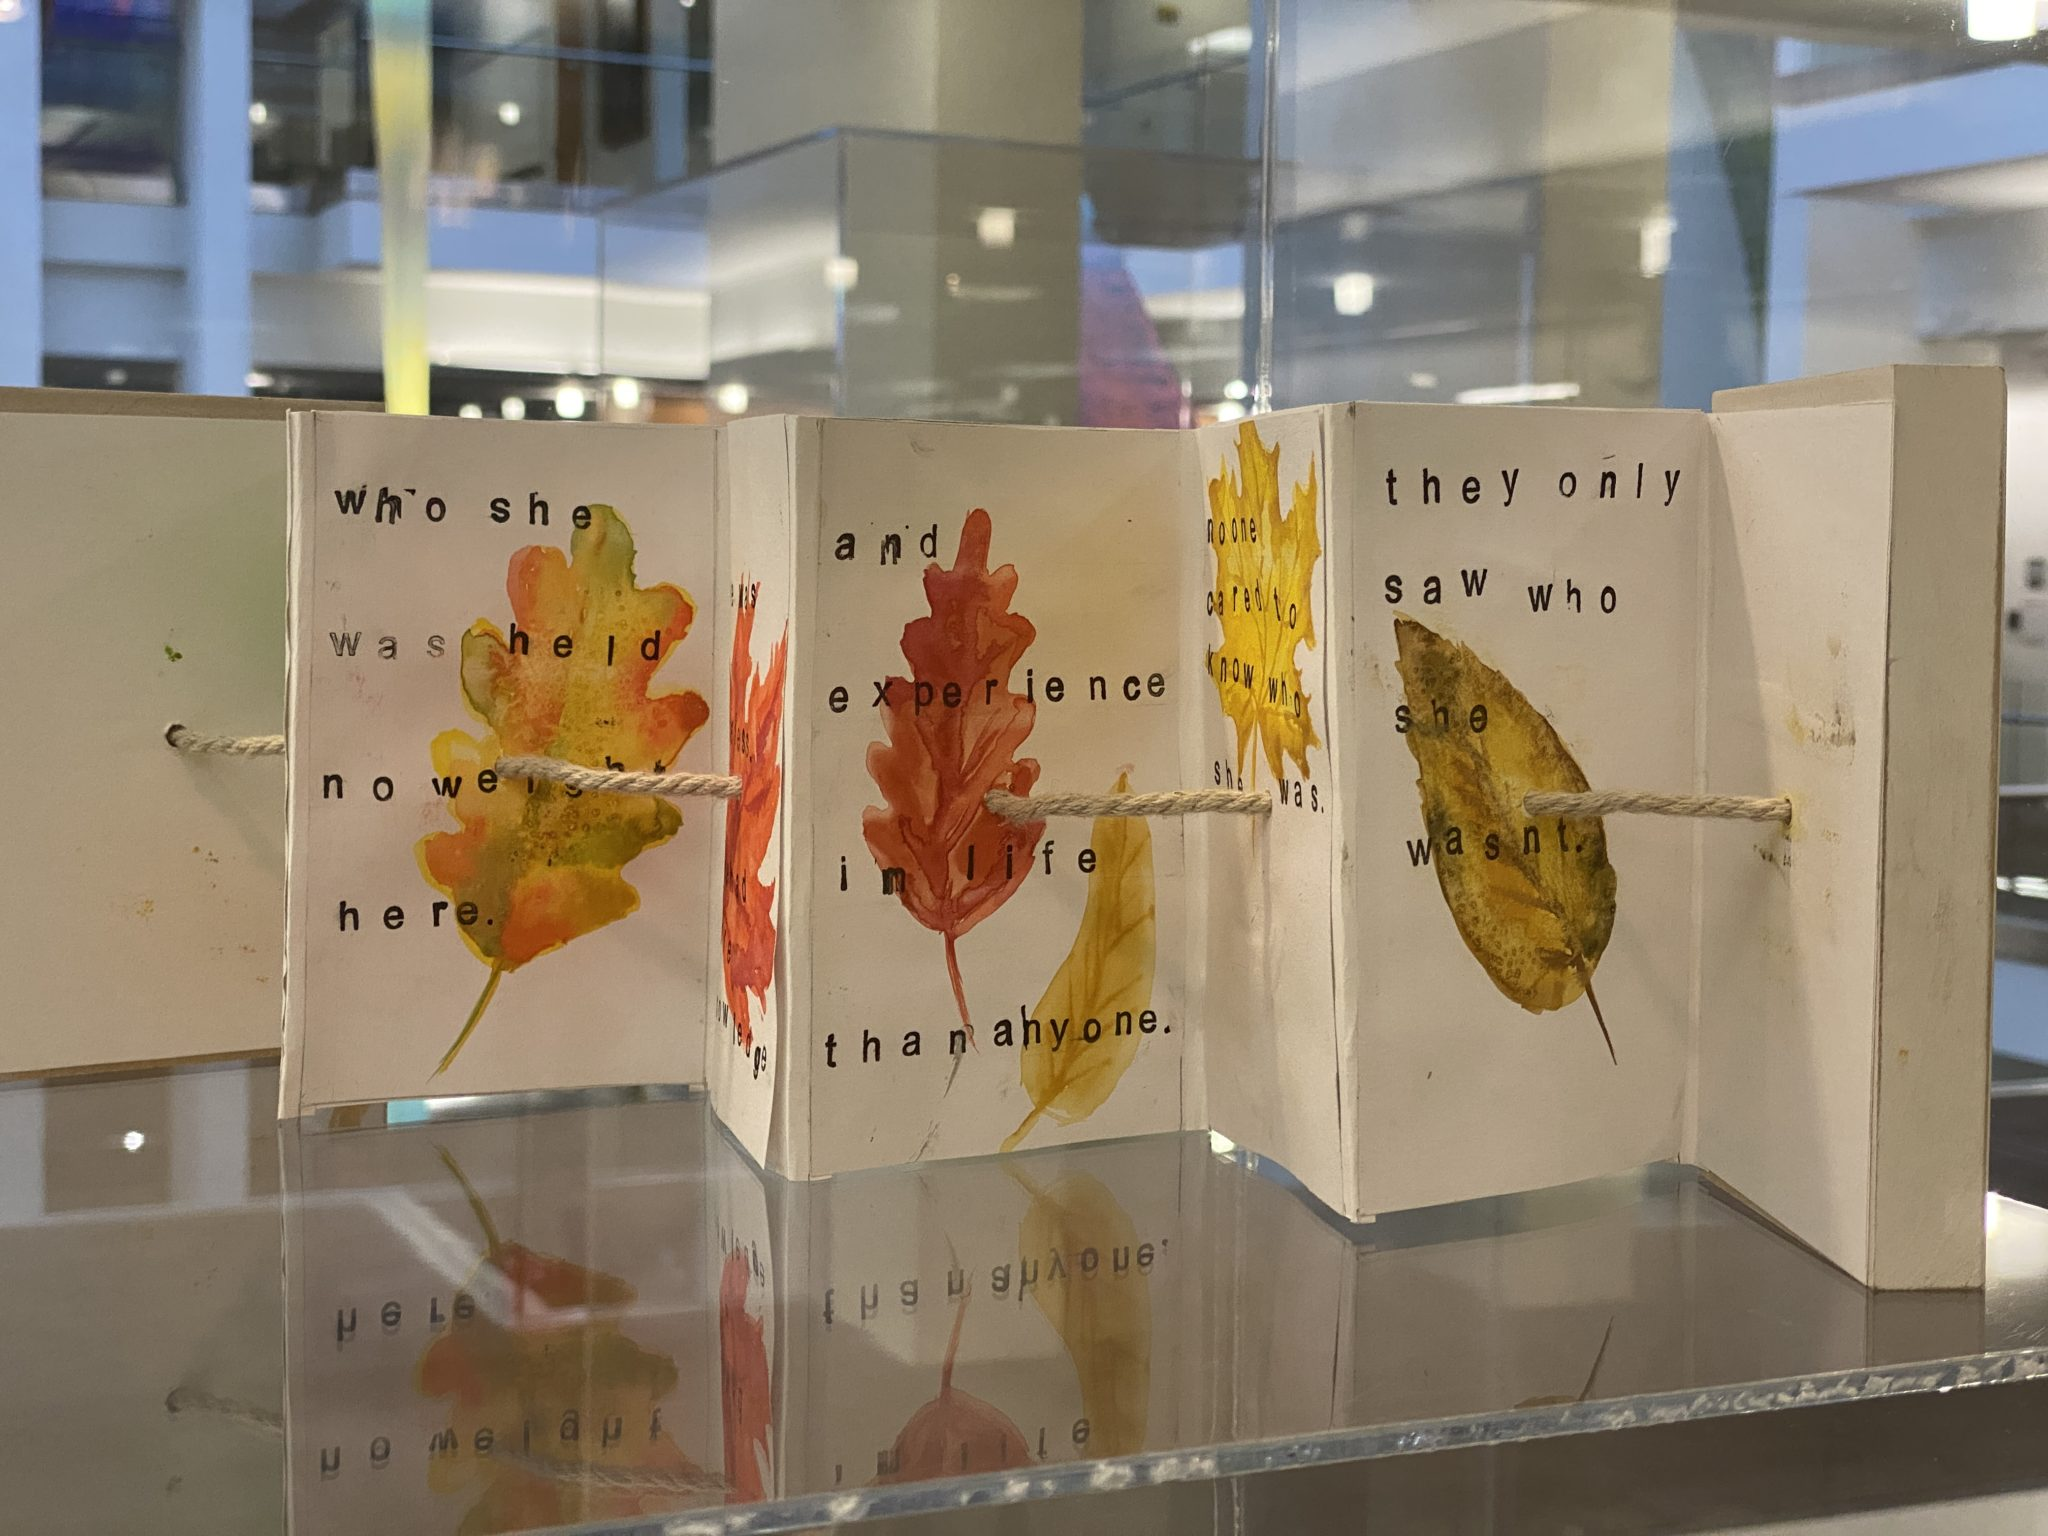 Decorative pages on display